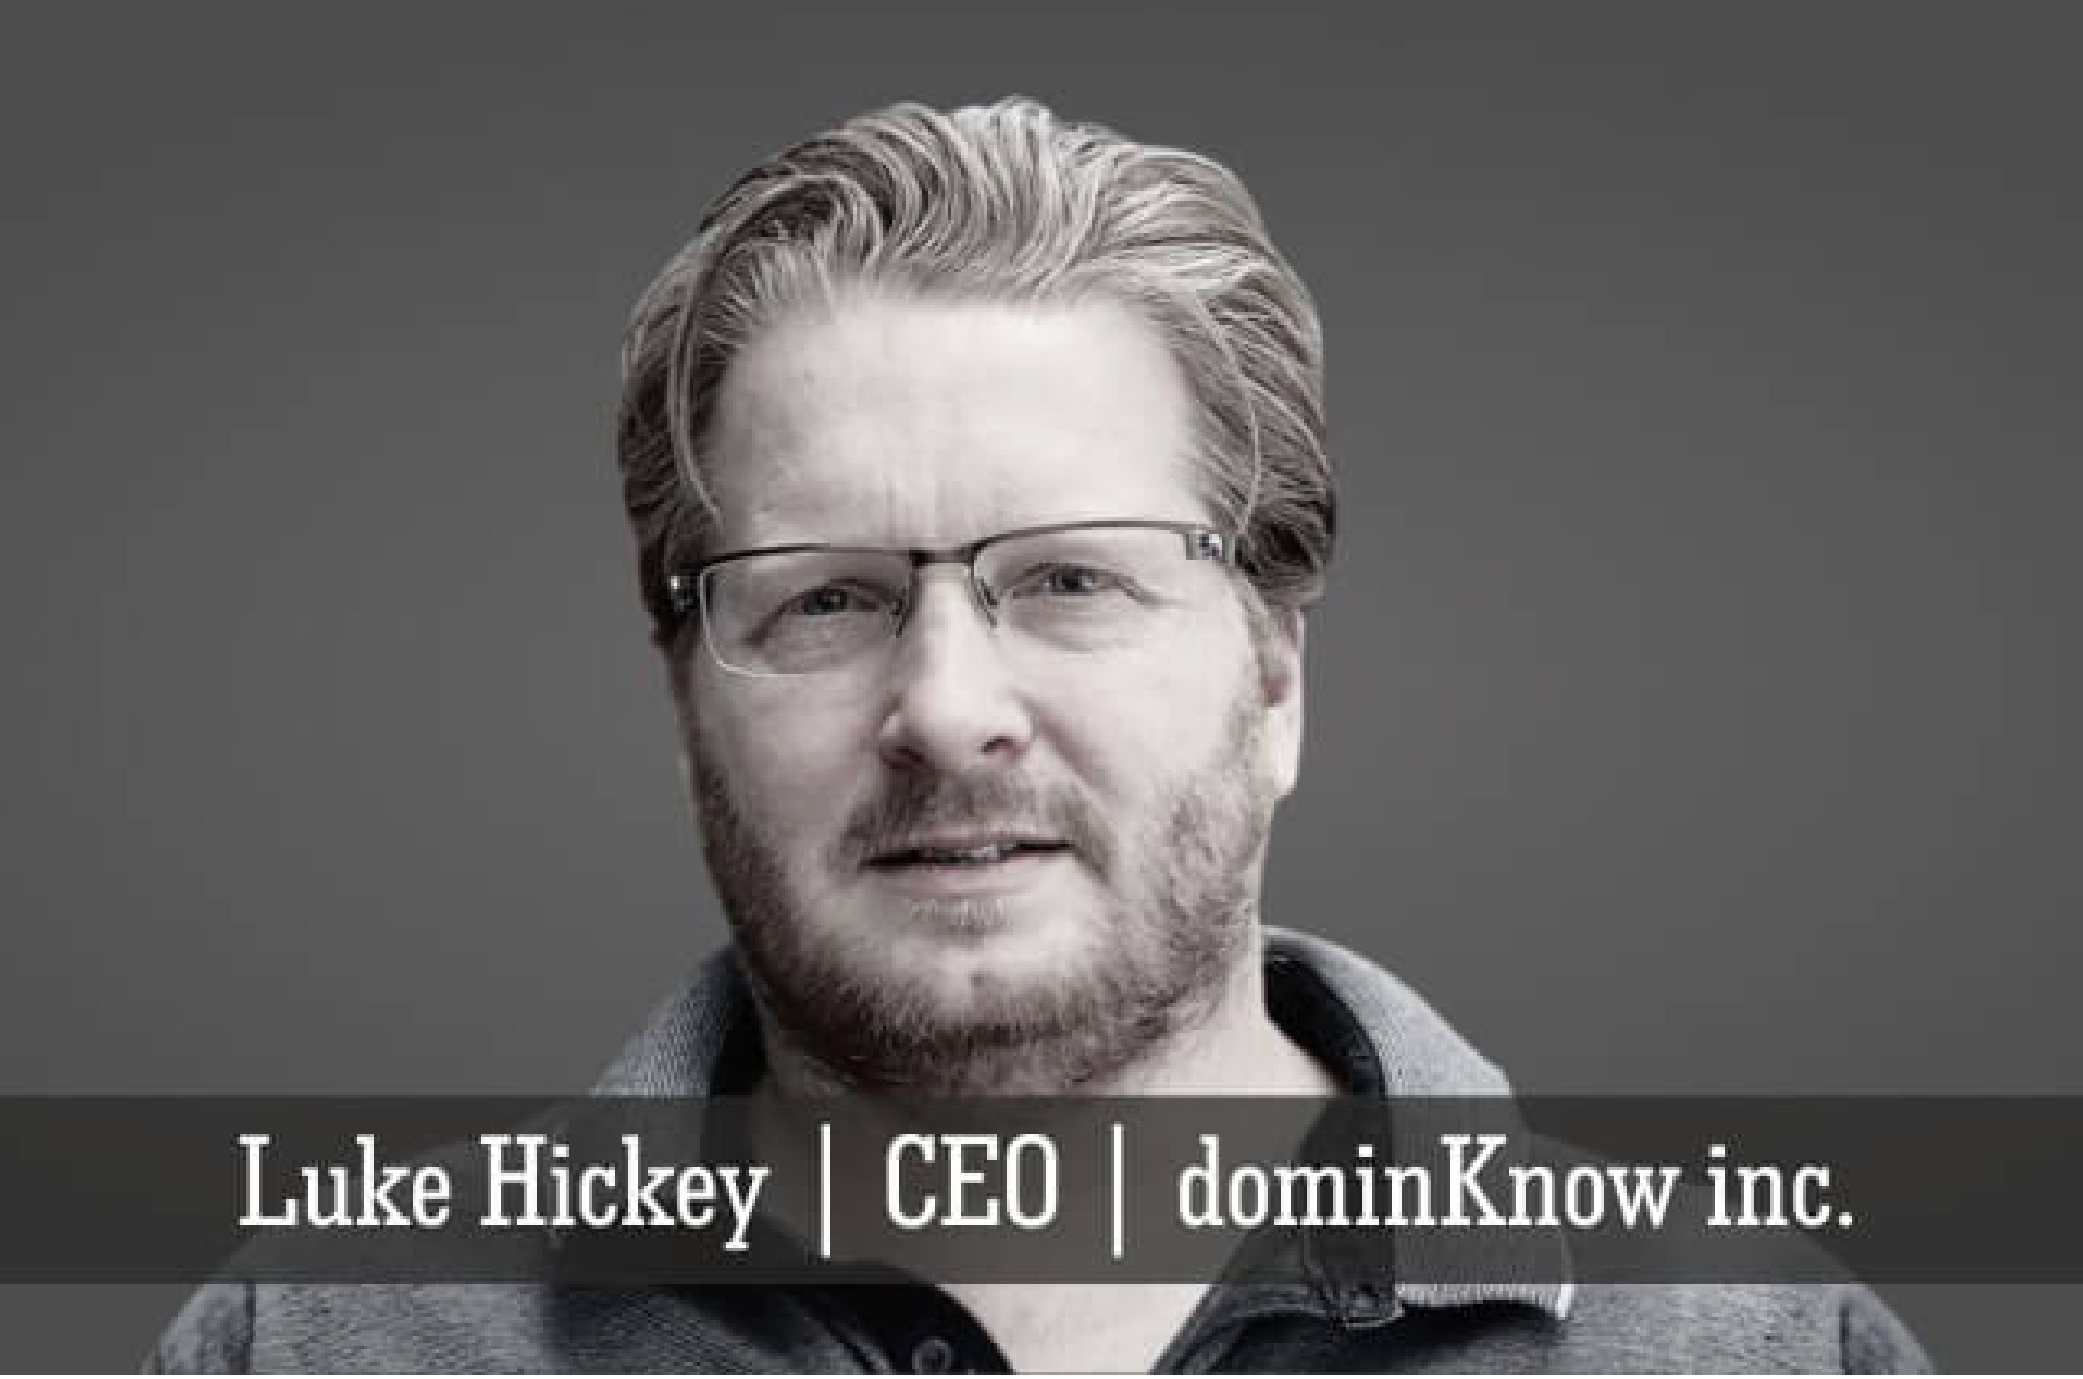 Luke Hickey CEO dominKnow